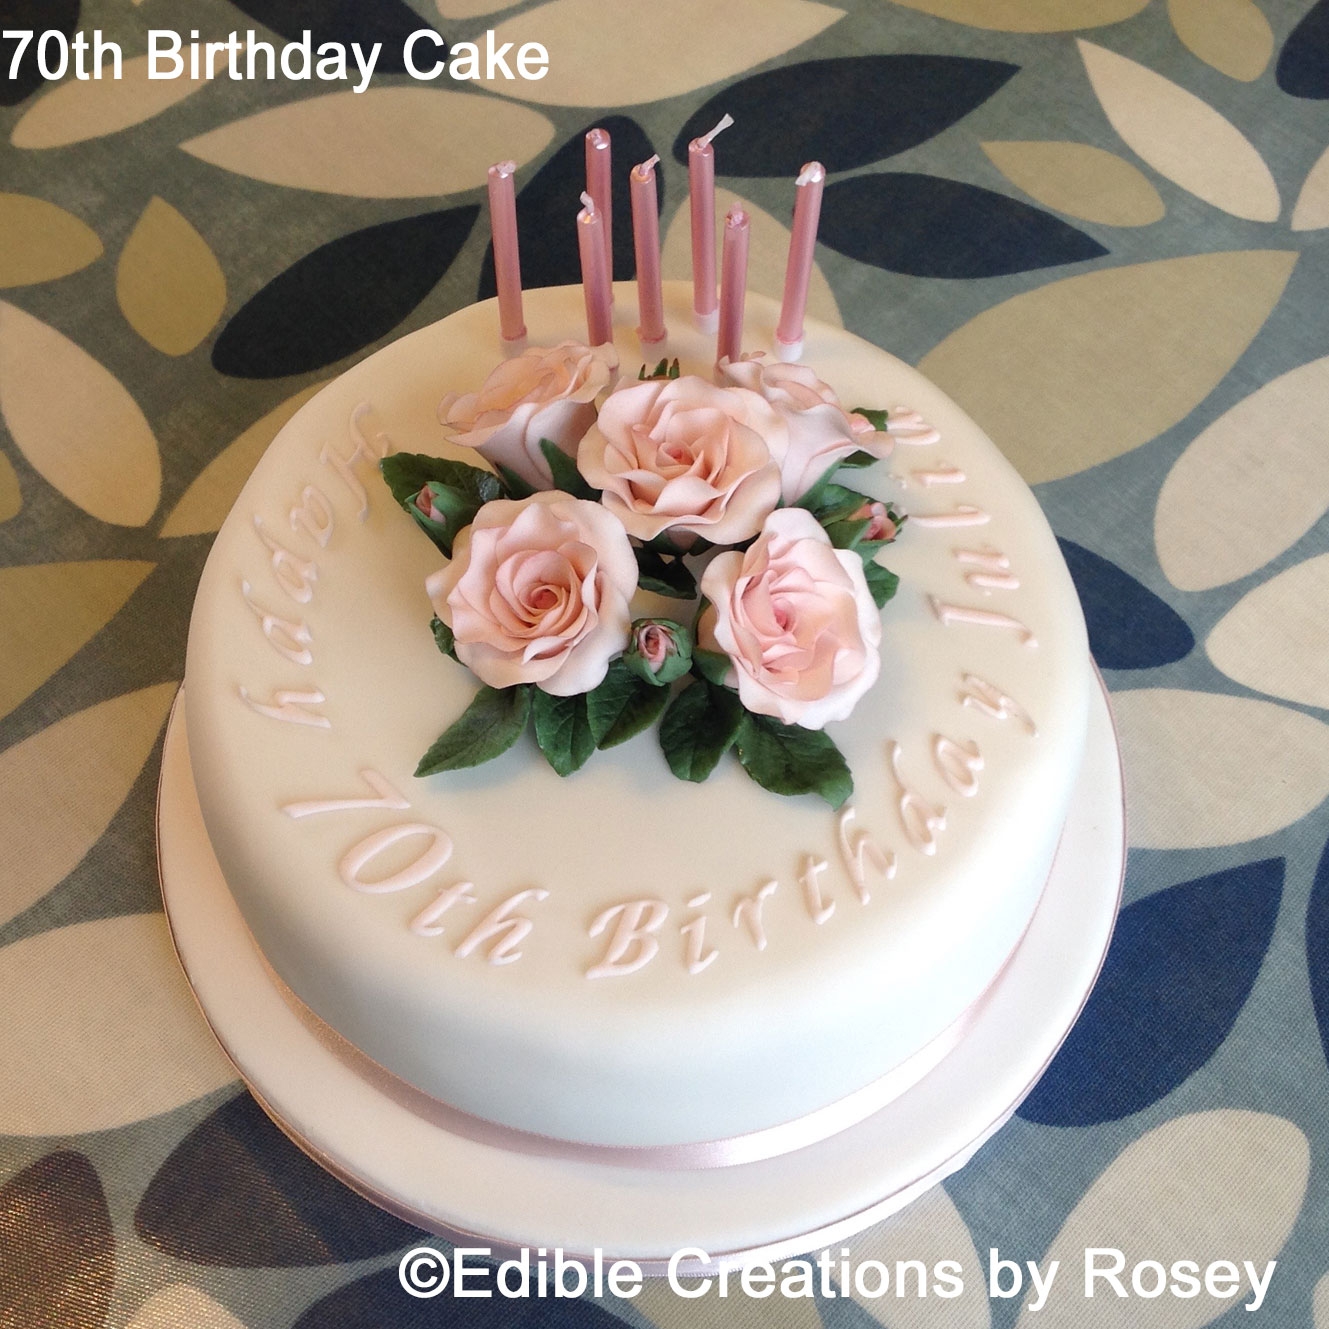 Birthday Cakes By Edible Creations Rosey In South West London